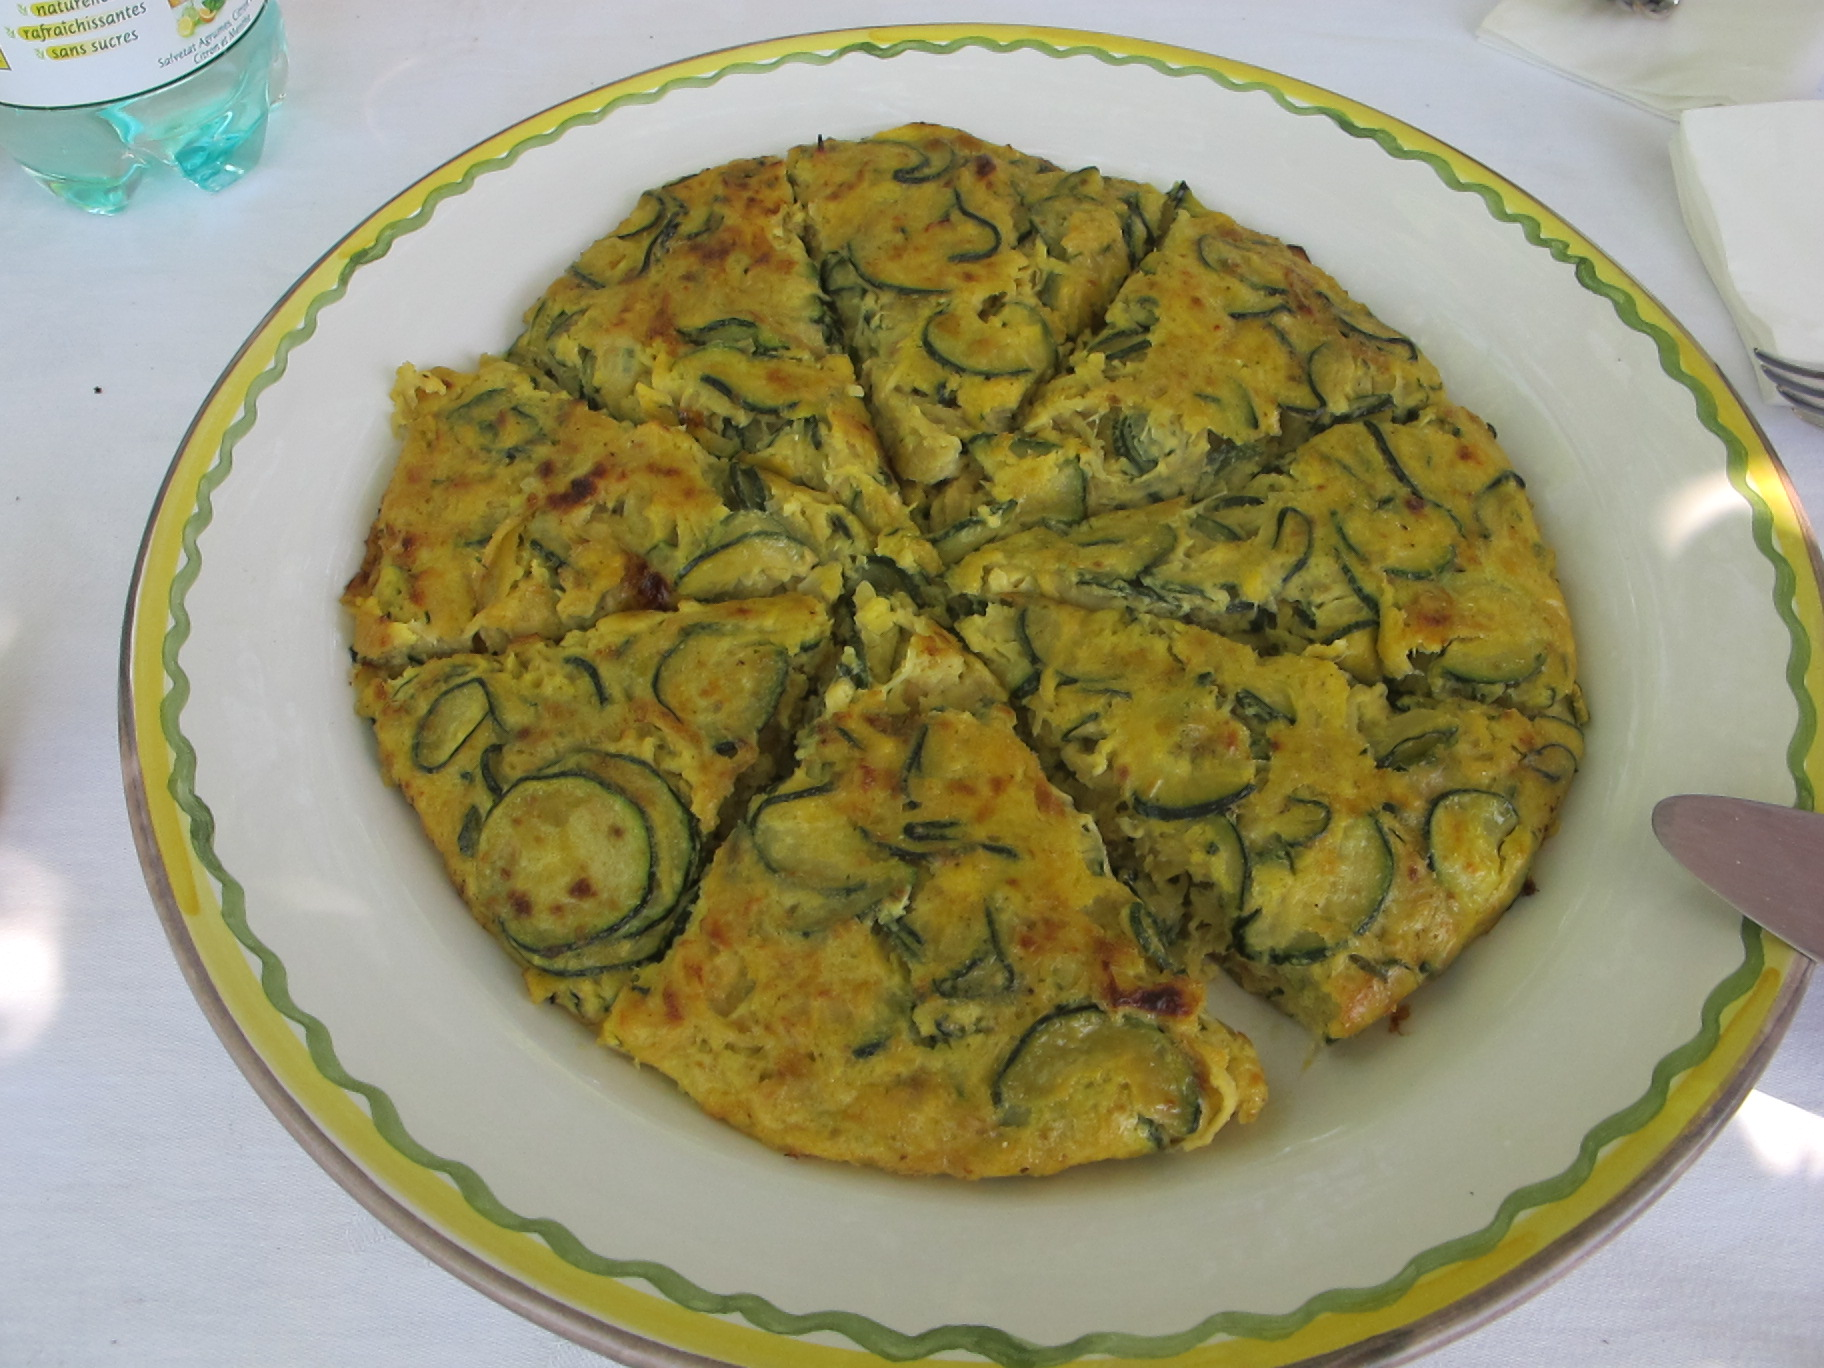 Courgette/zucchini and onion frittata | Robin Ellis